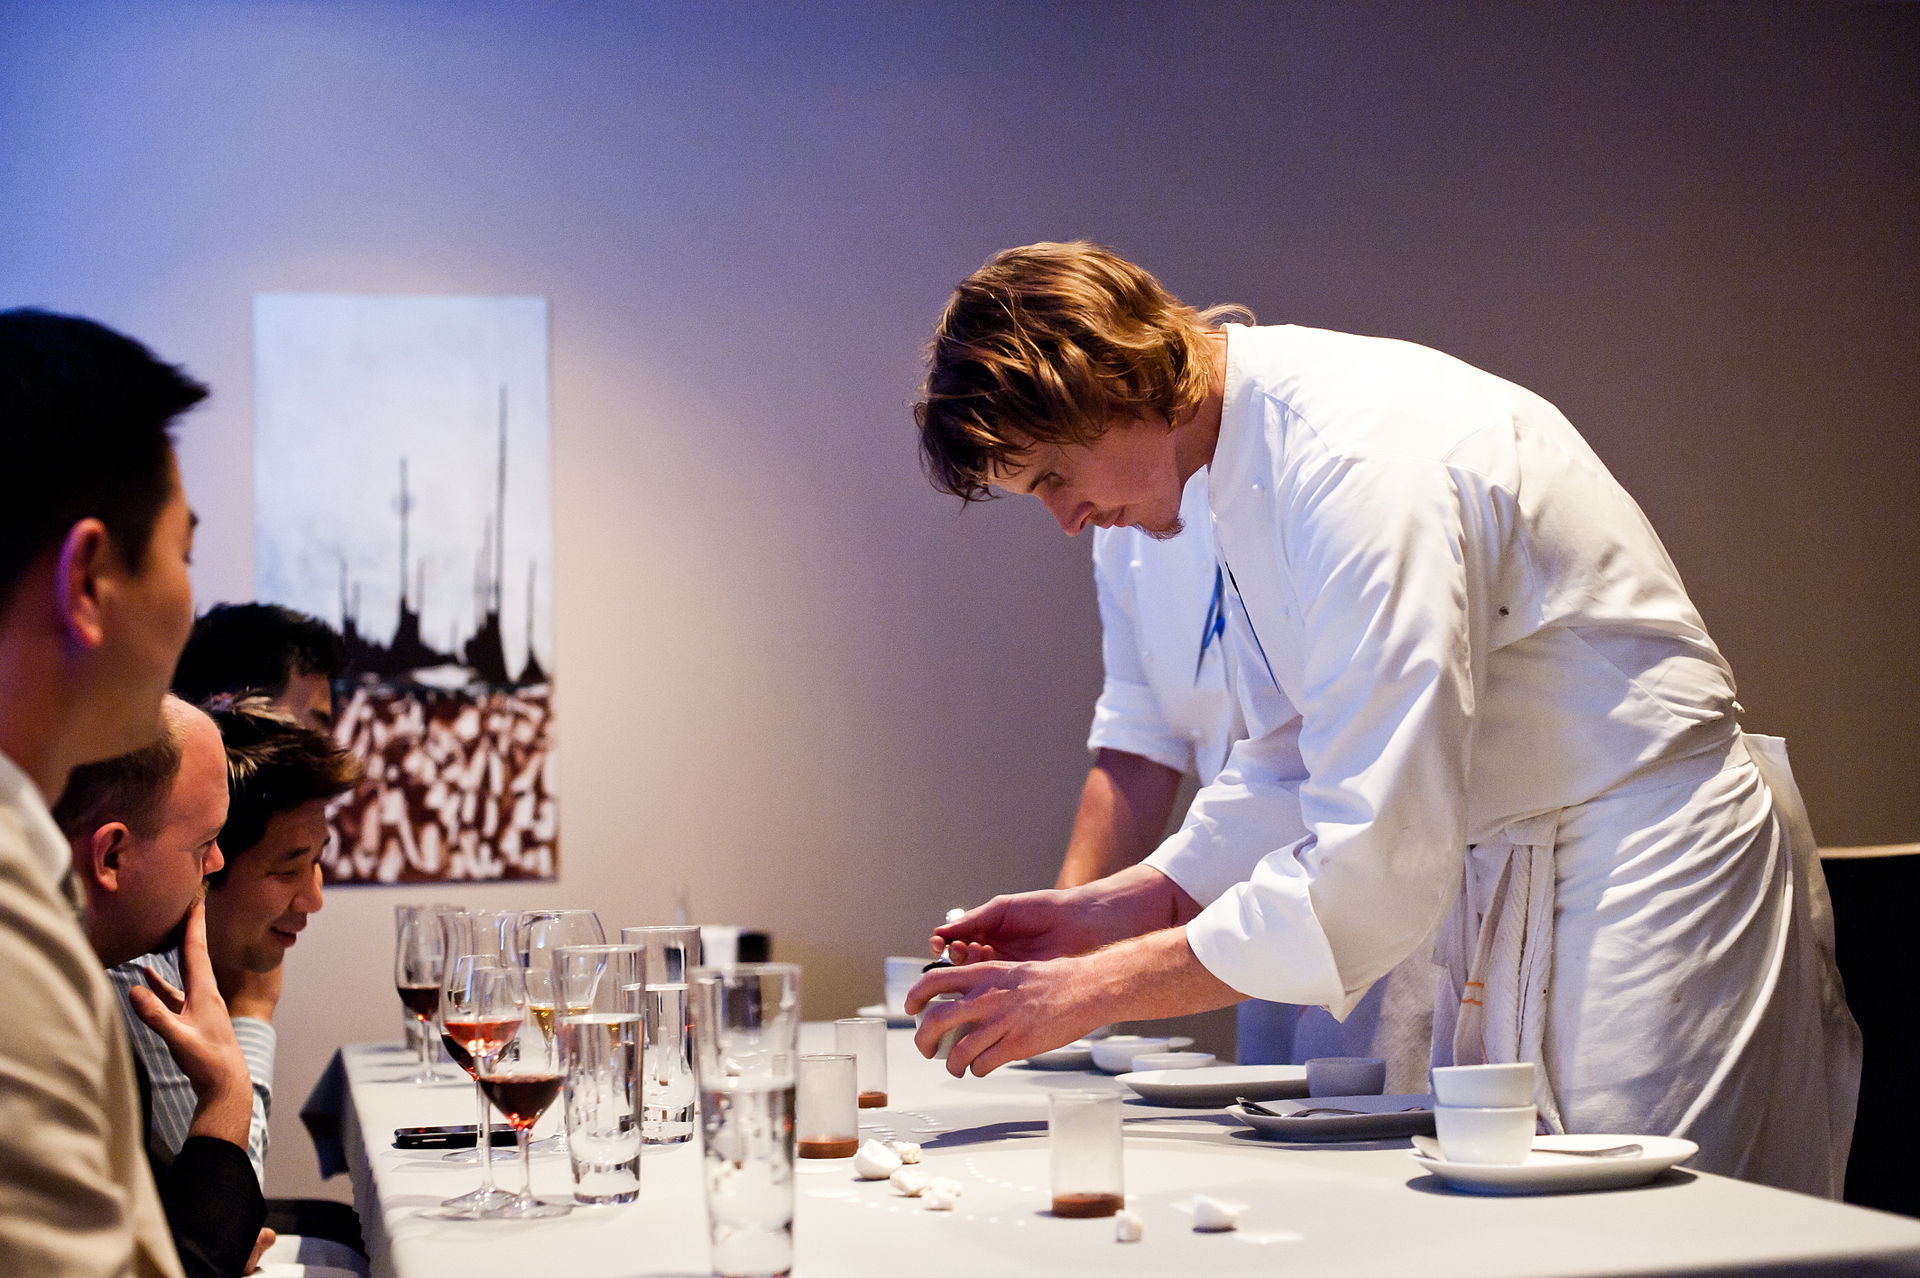 Grant achatz wikipedia for American cuisine wikipedia